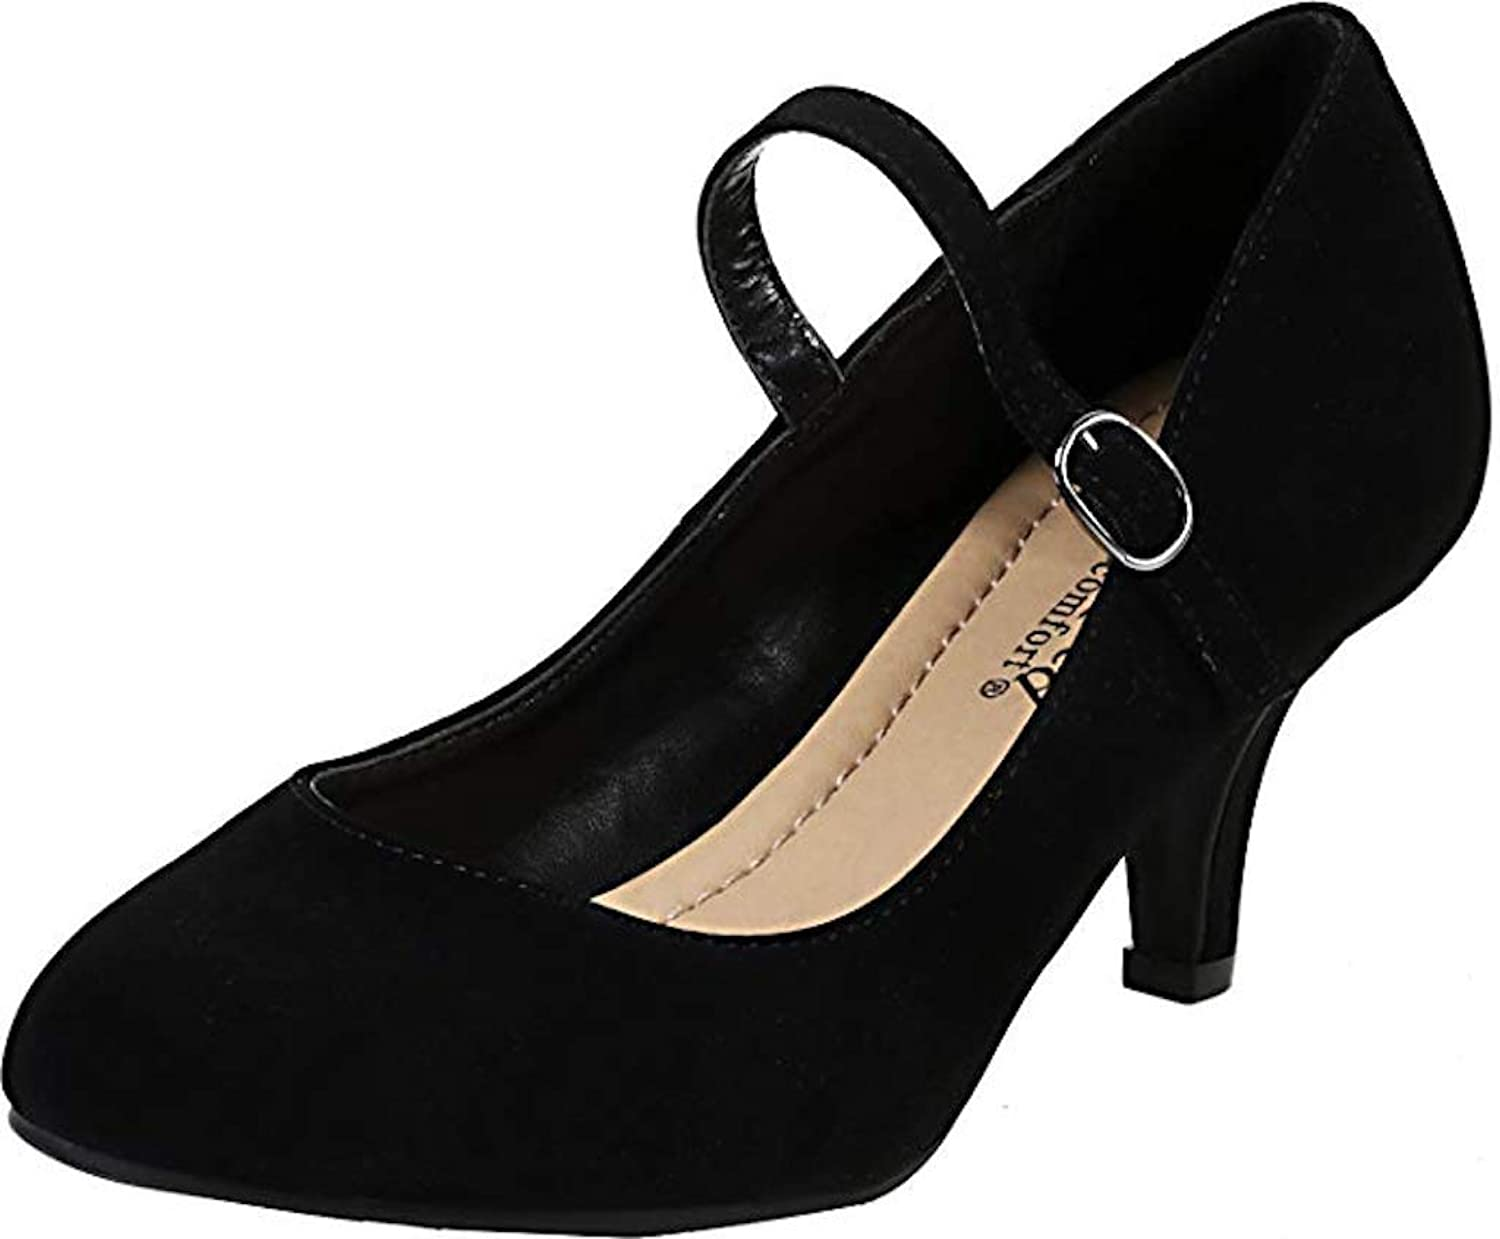 City Classified Comfort Women's Kirk Mary Jane High Heel,Black Nu,11